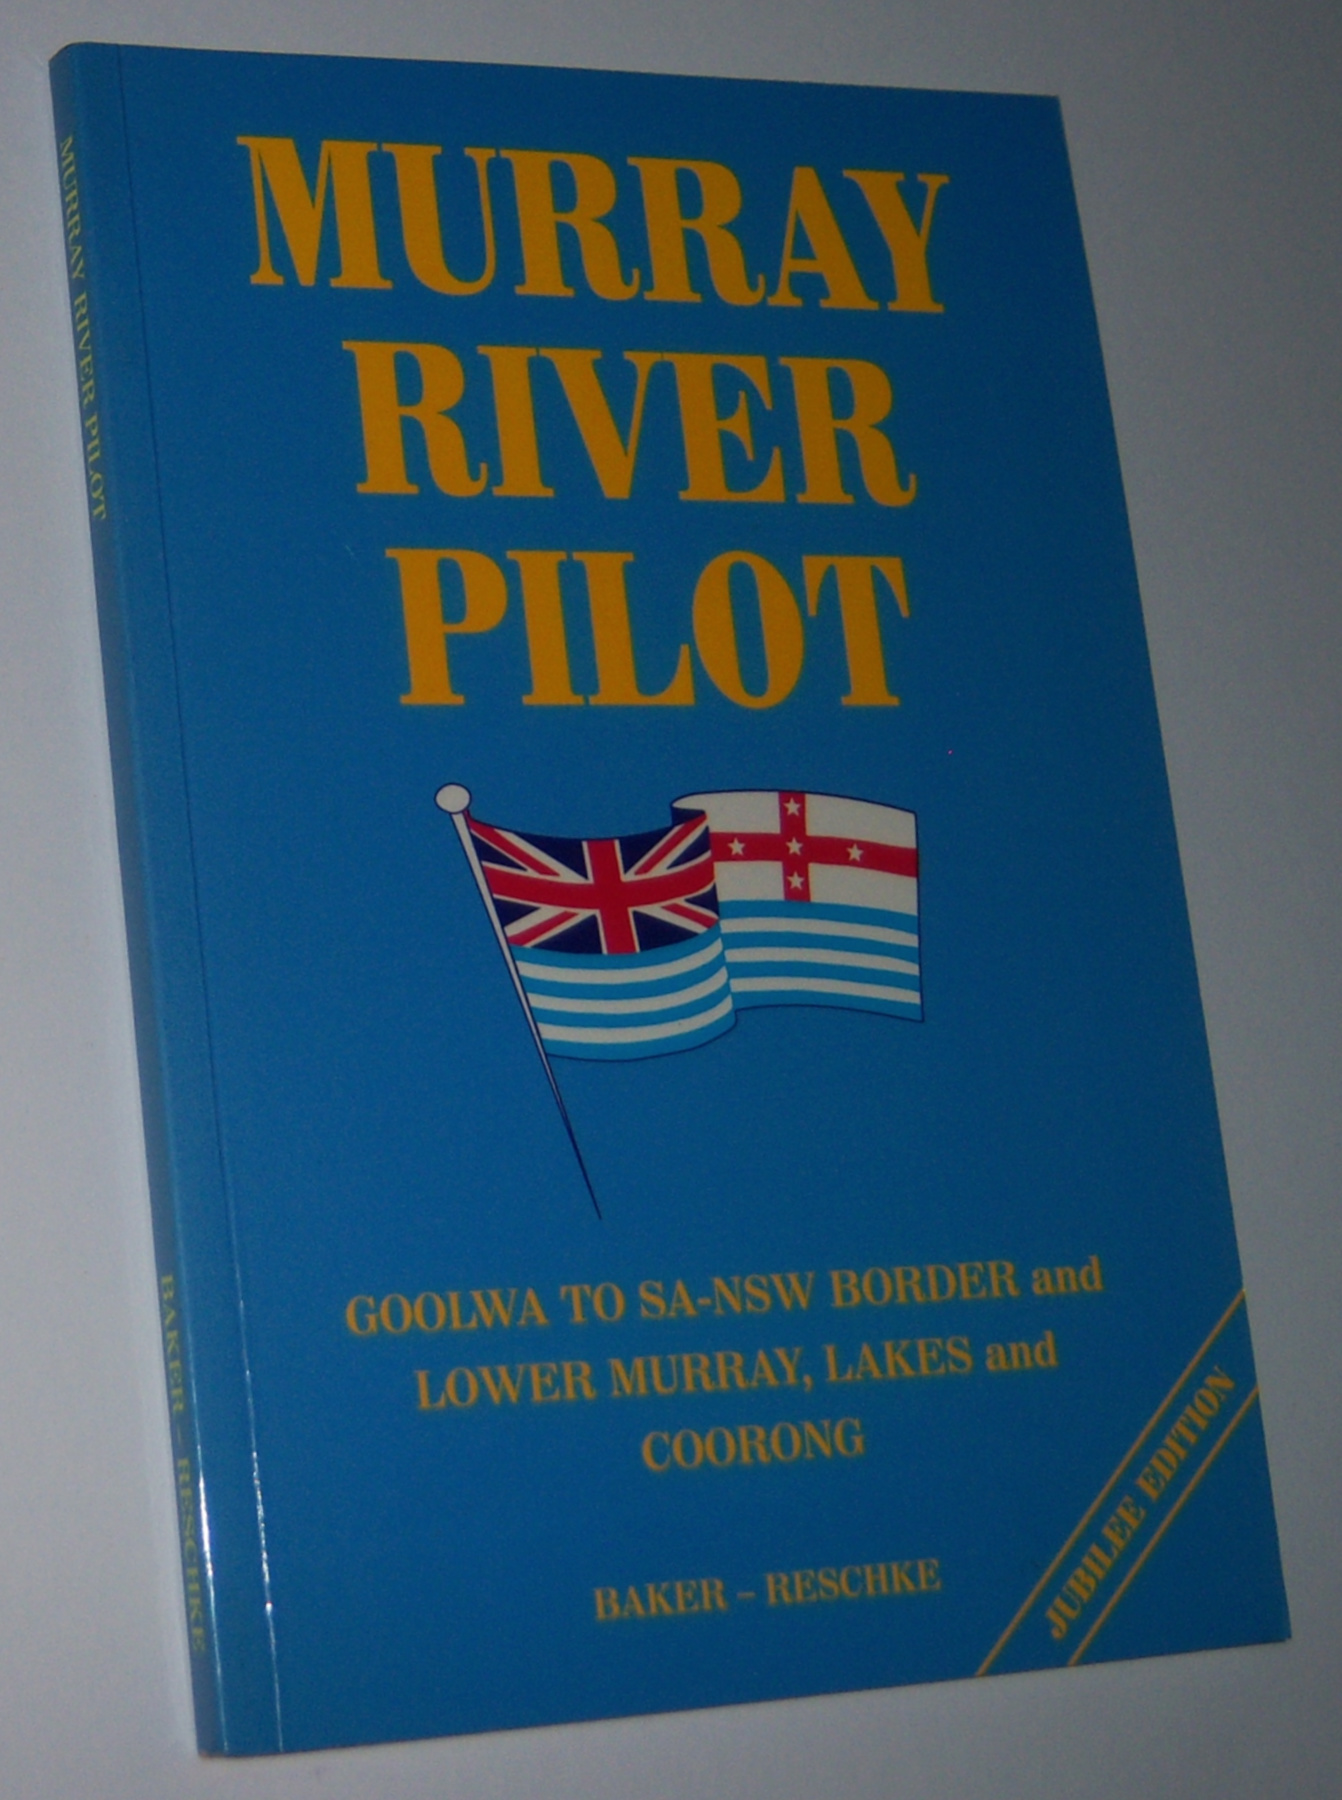 Image for MURRAY RIVER PILOT: Goolwa to SA-NSW Border and Lower Murray, Lakes and Coorong  (Jubilee Edition)